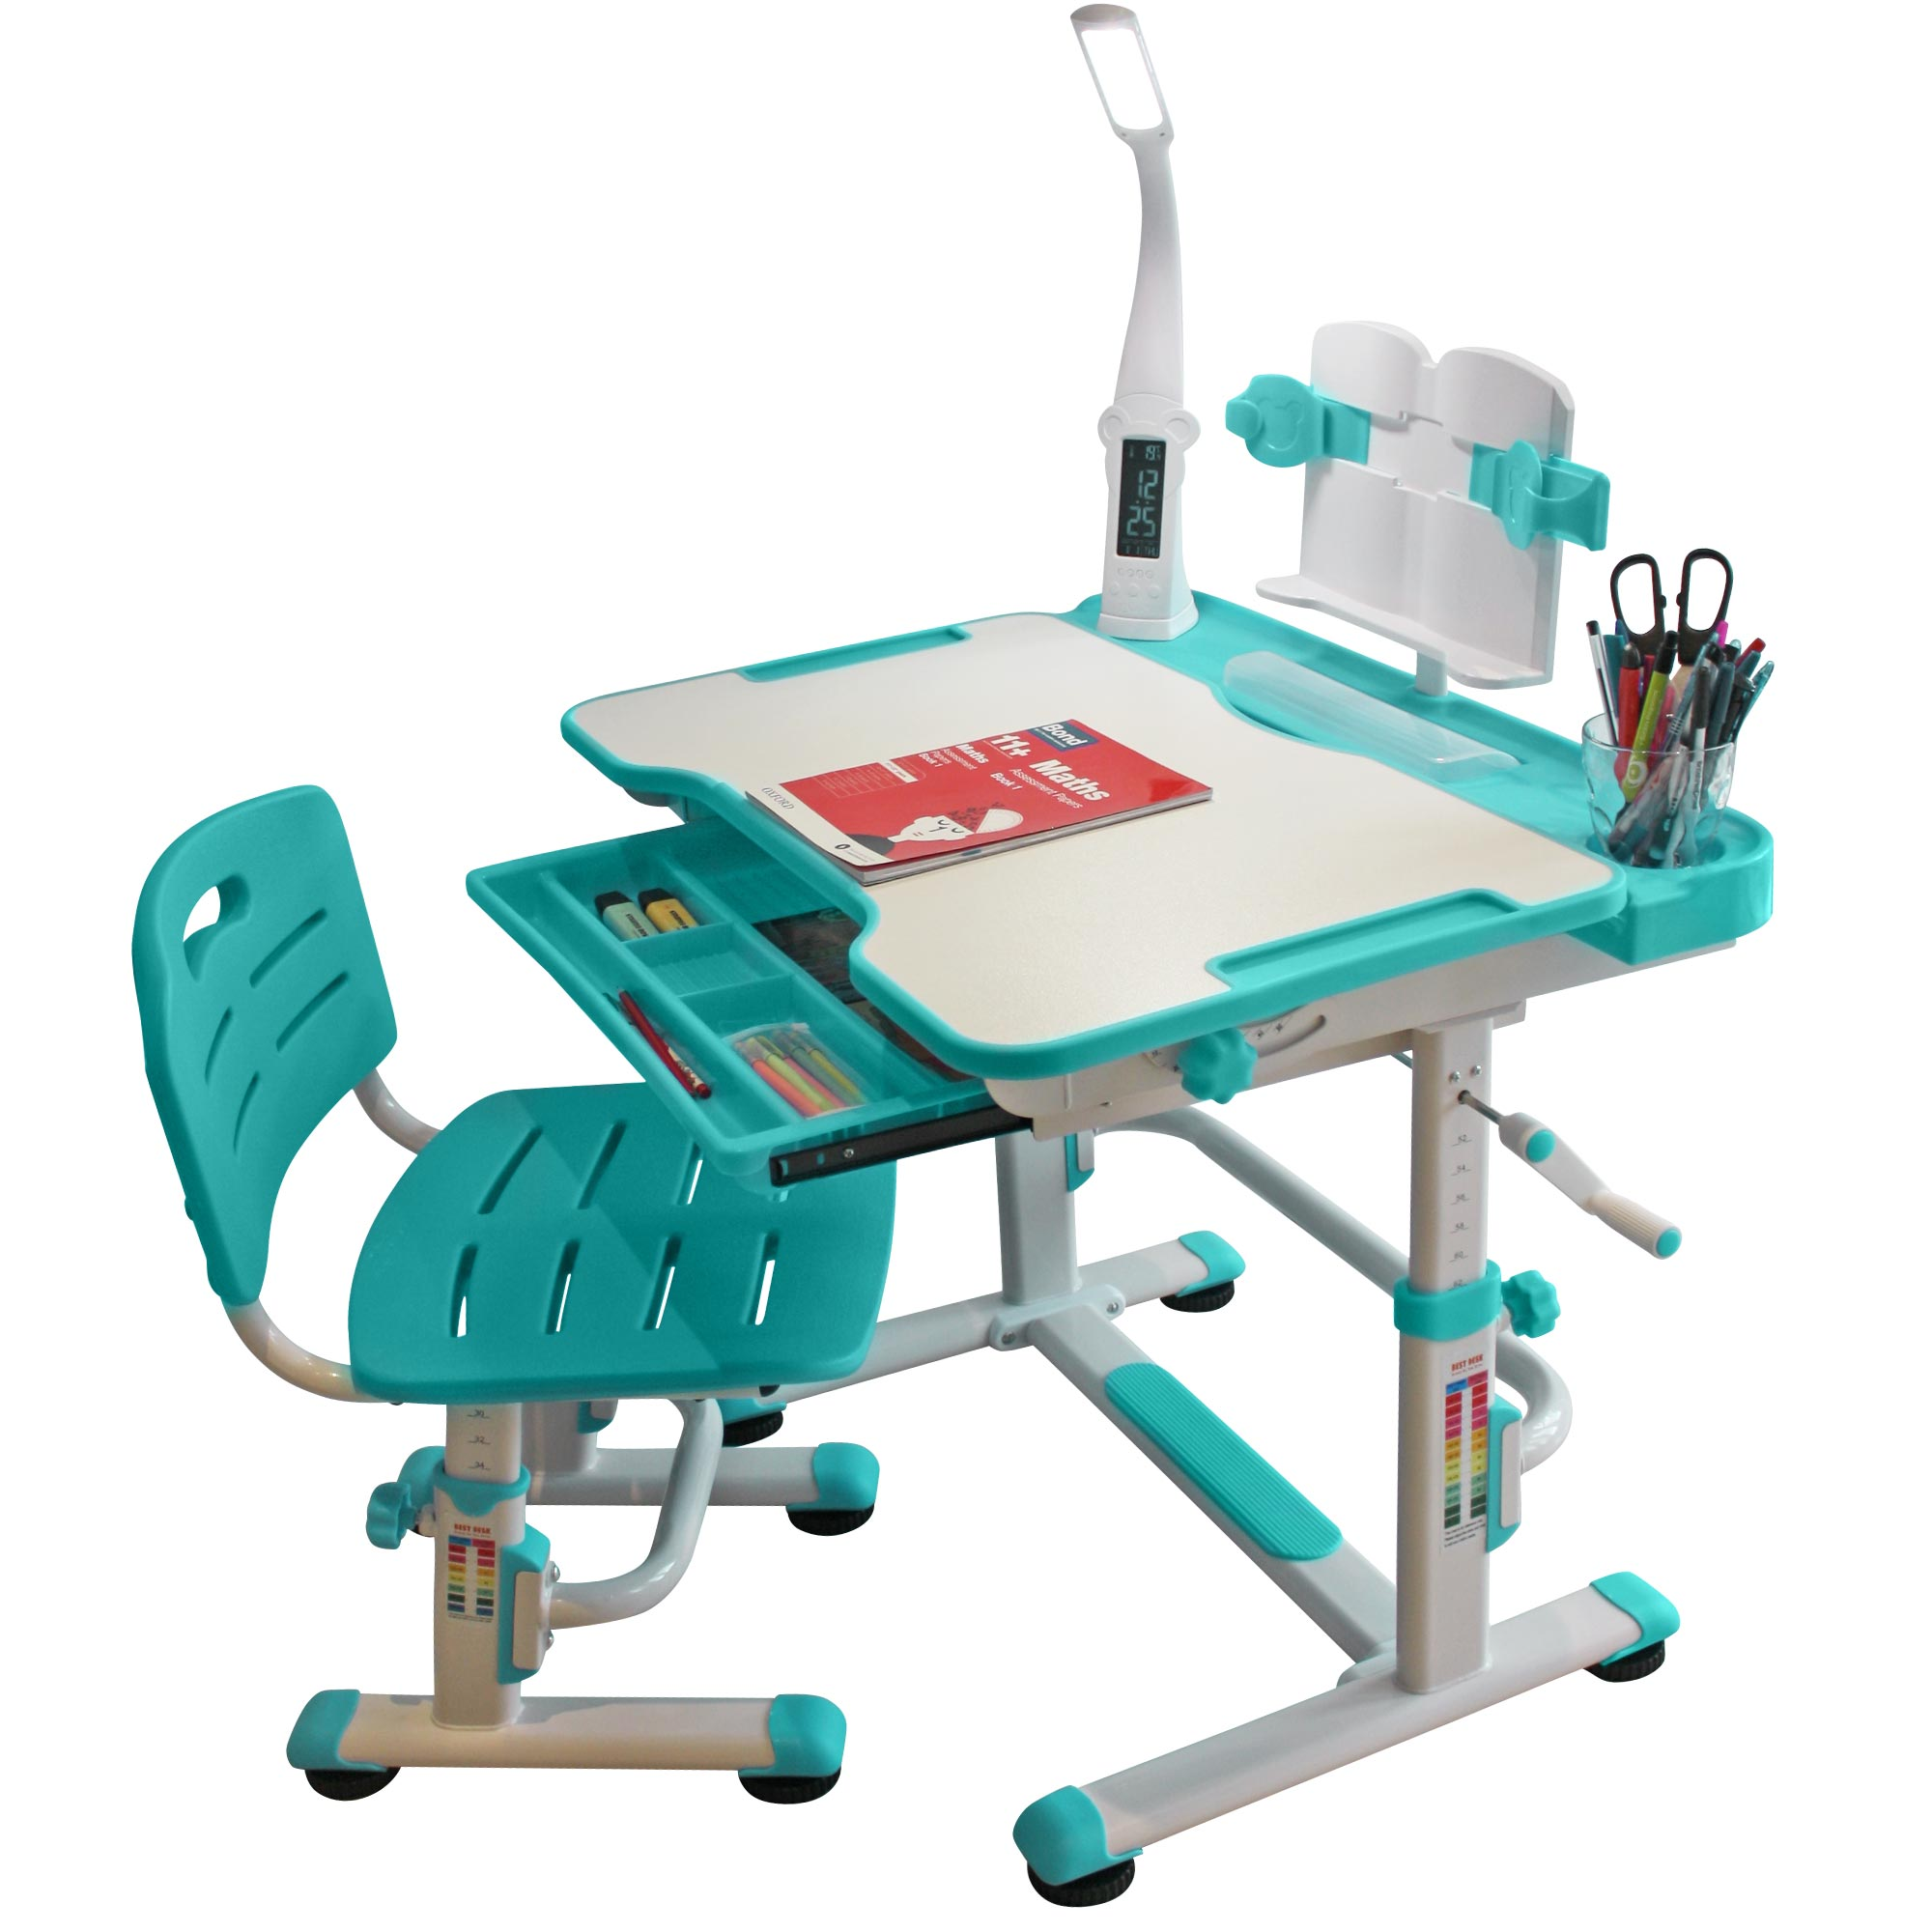 ergonomic-kids-desk-chair-study-desk-sprite-green-table-for-kids-2019-model-06